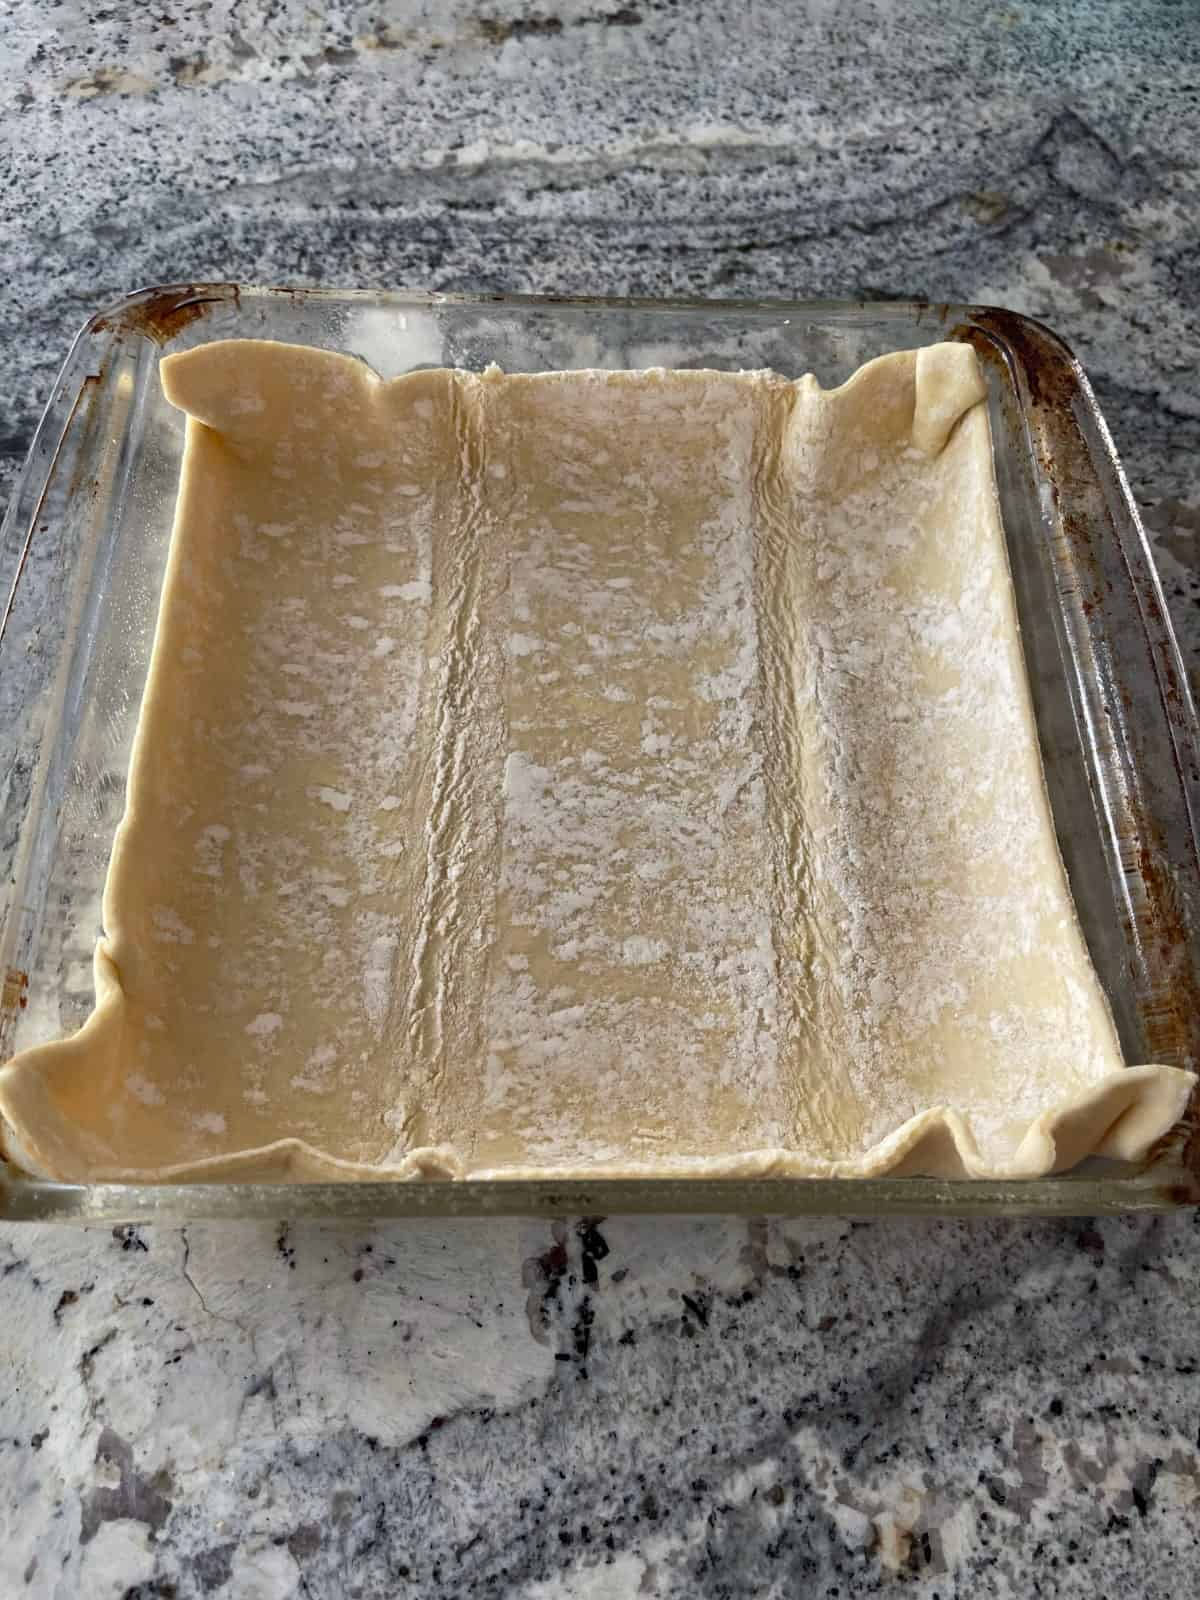 8-inch square glass baking dish with puff pasty sheet on granite counter.